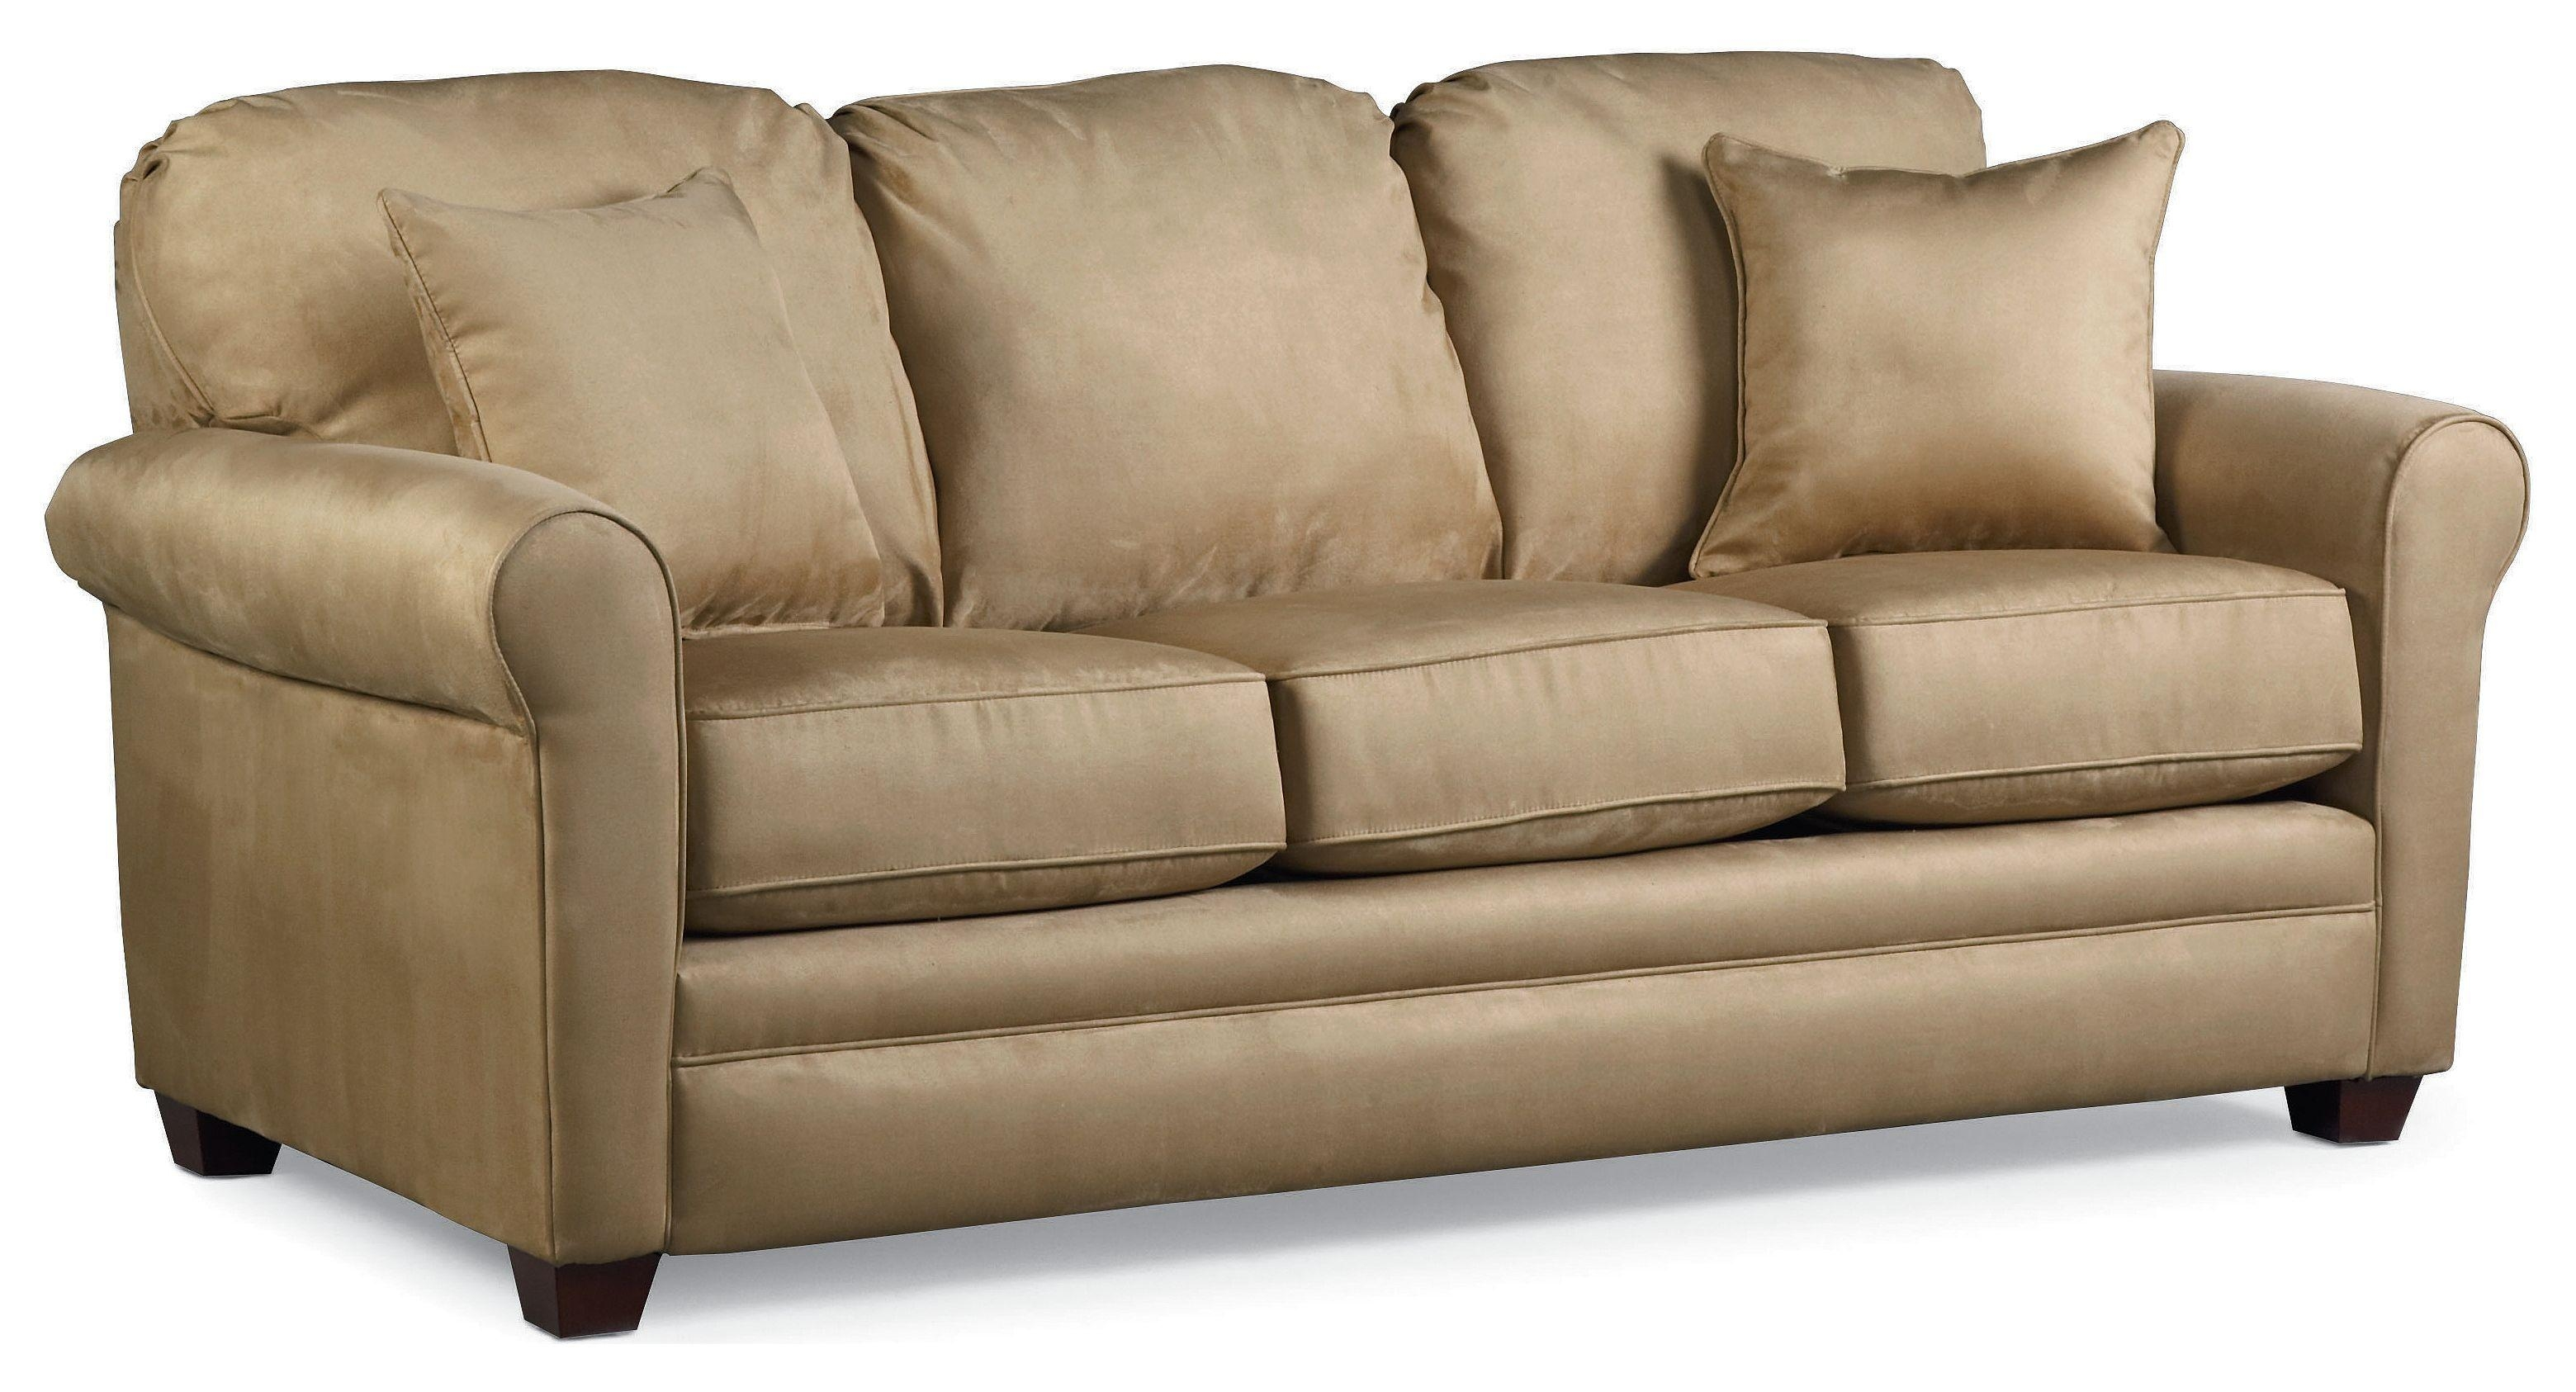 Innovative Queen Size Sofa Sleeper Coolest Home Design Plans With intended for Sleeper Sofas